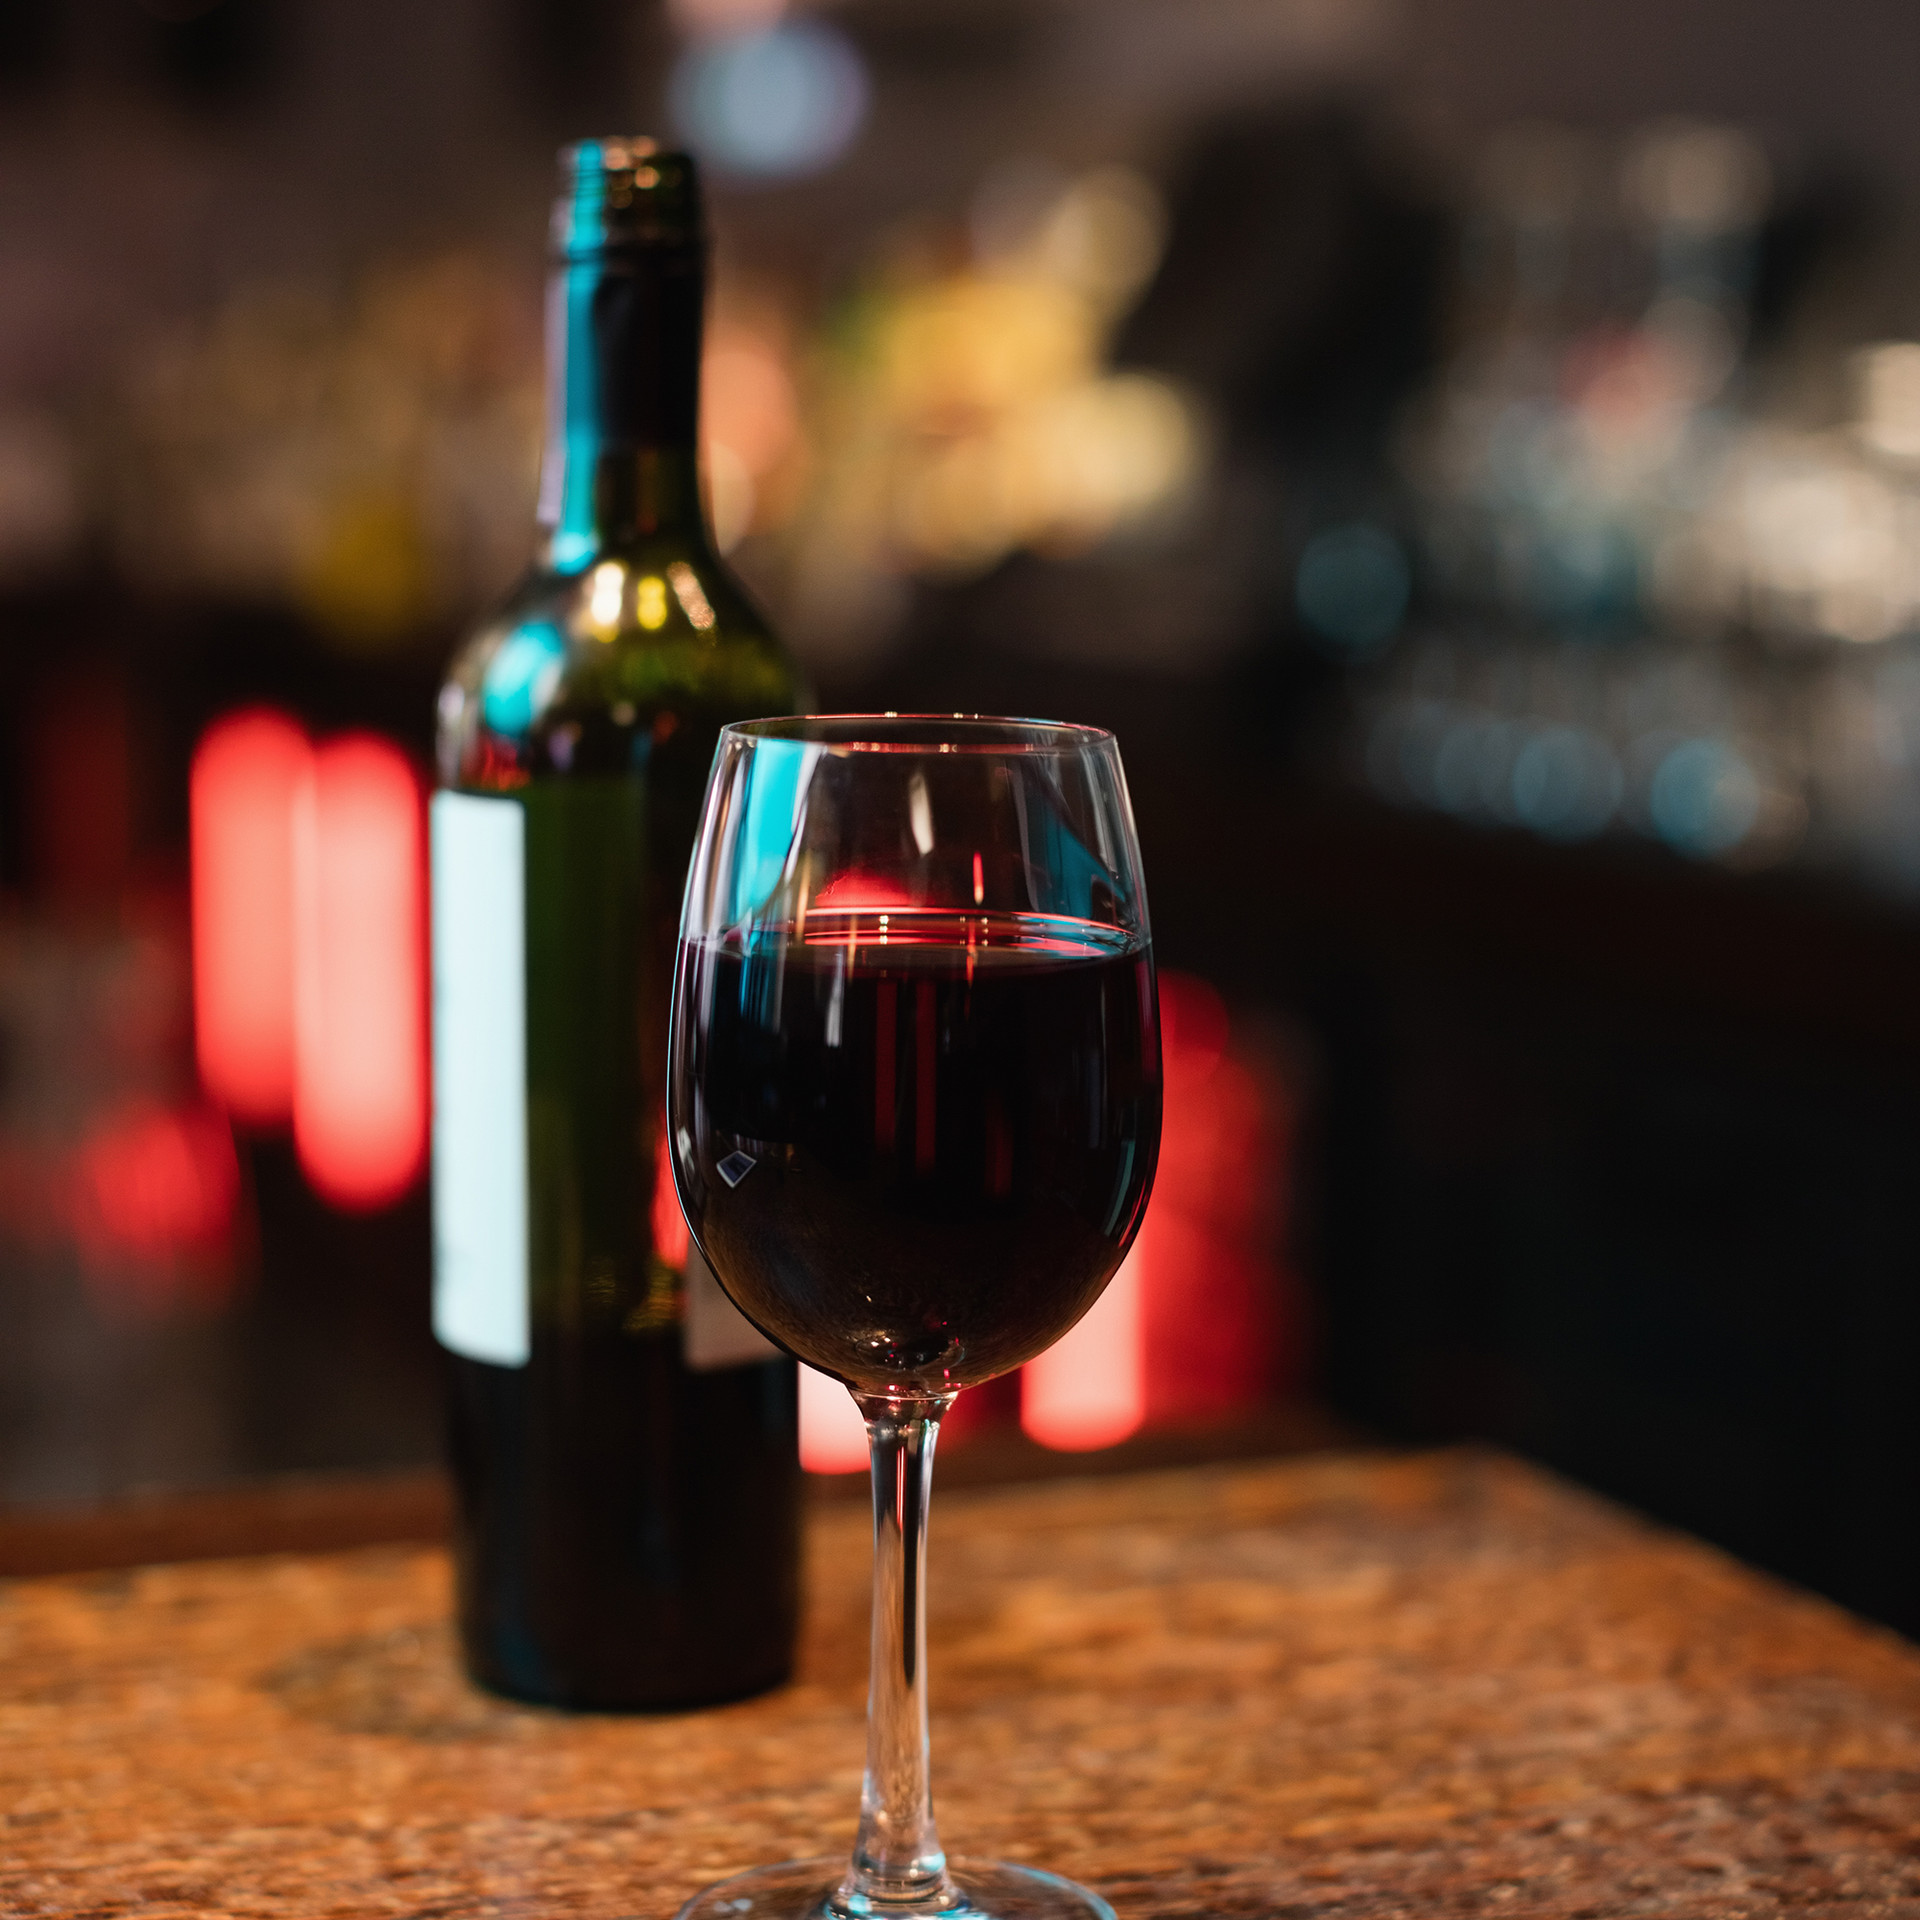 glass-red-wine-bar-counter.jpg